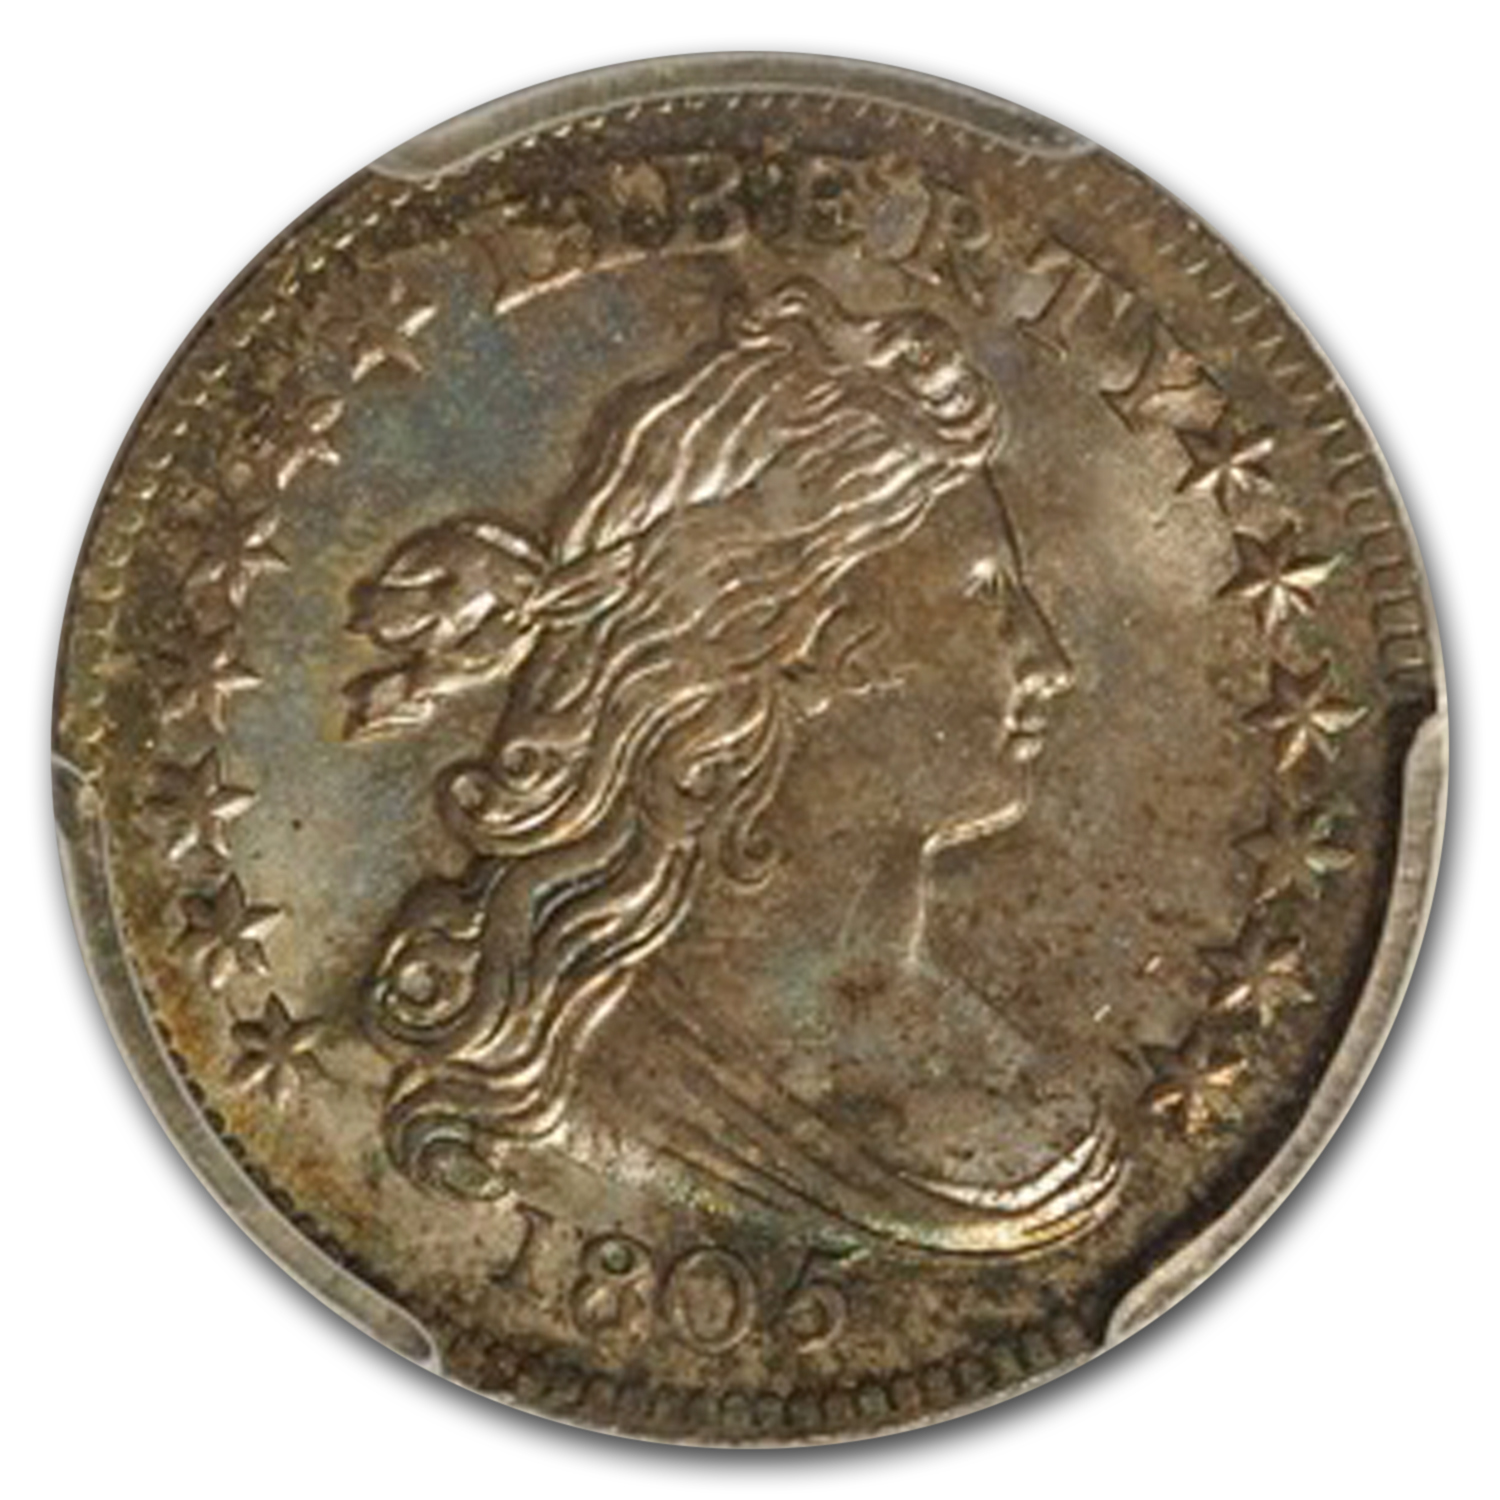 1805 Draped Bust Dime, 4 Berries, MS-66+ PCGS (CAC)